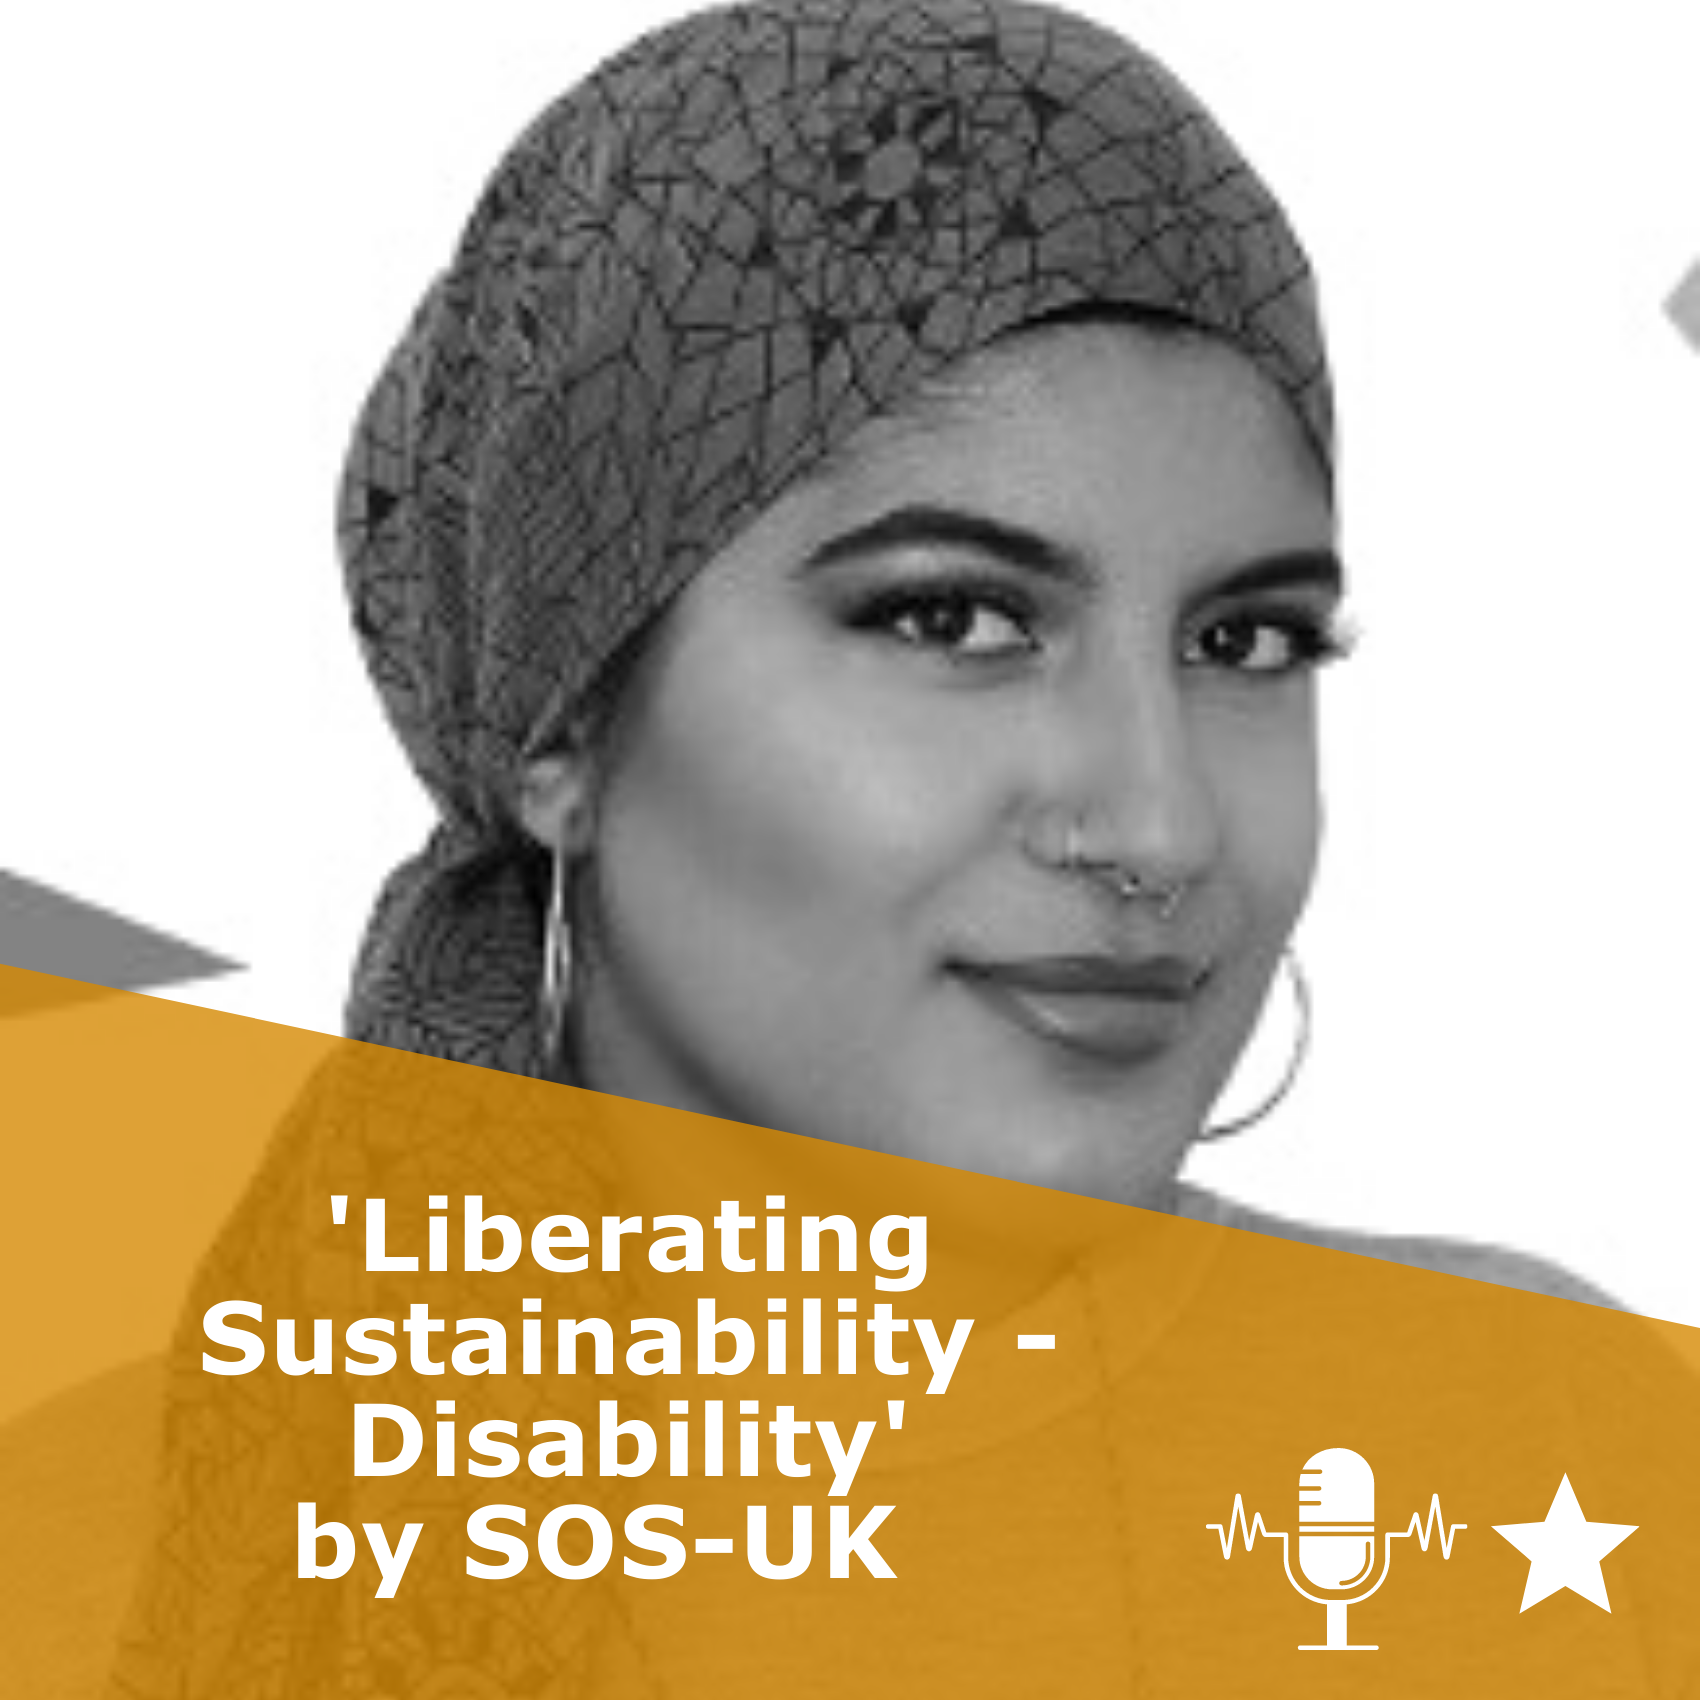 Title 'Liberating Sustainability - Disability | SOS-UK'. It is a podcast episode rated 1 star.